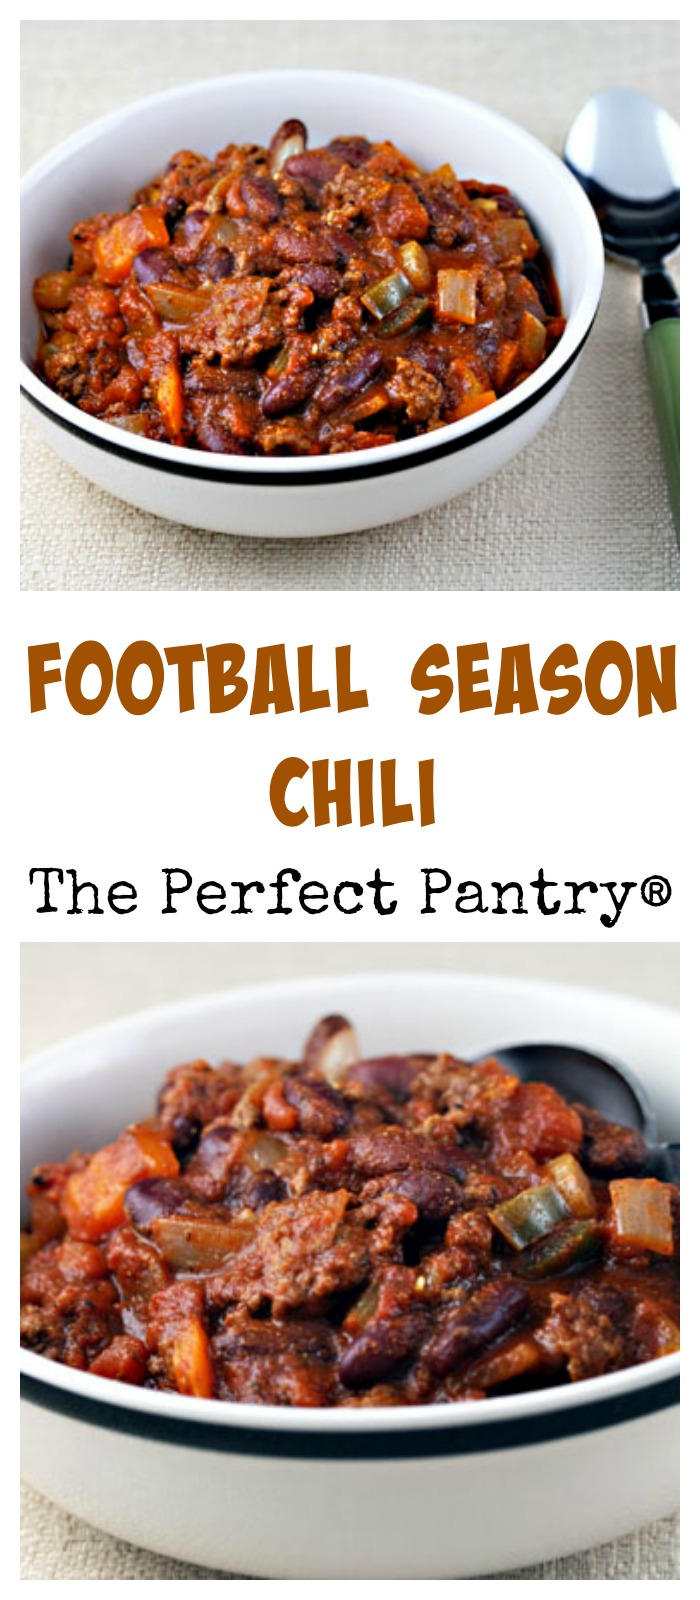 Football season chili, from an old Boston restaurant.